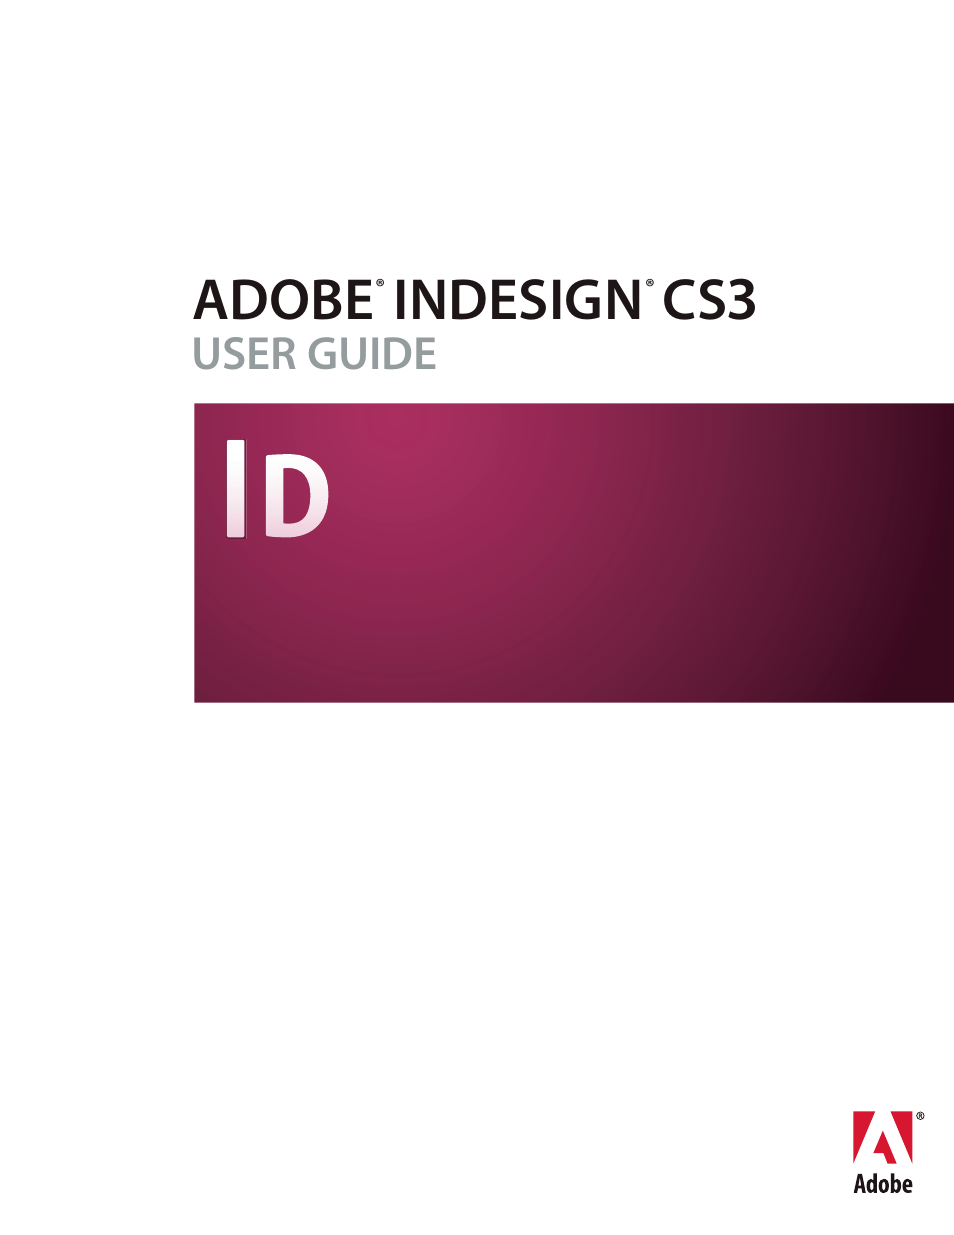 adobe indesign cs3 download mac whatus new in adobe cc learn about rh interiordesignflorida co Adobe Photoshop CS4 Adobe Photoshop CS4